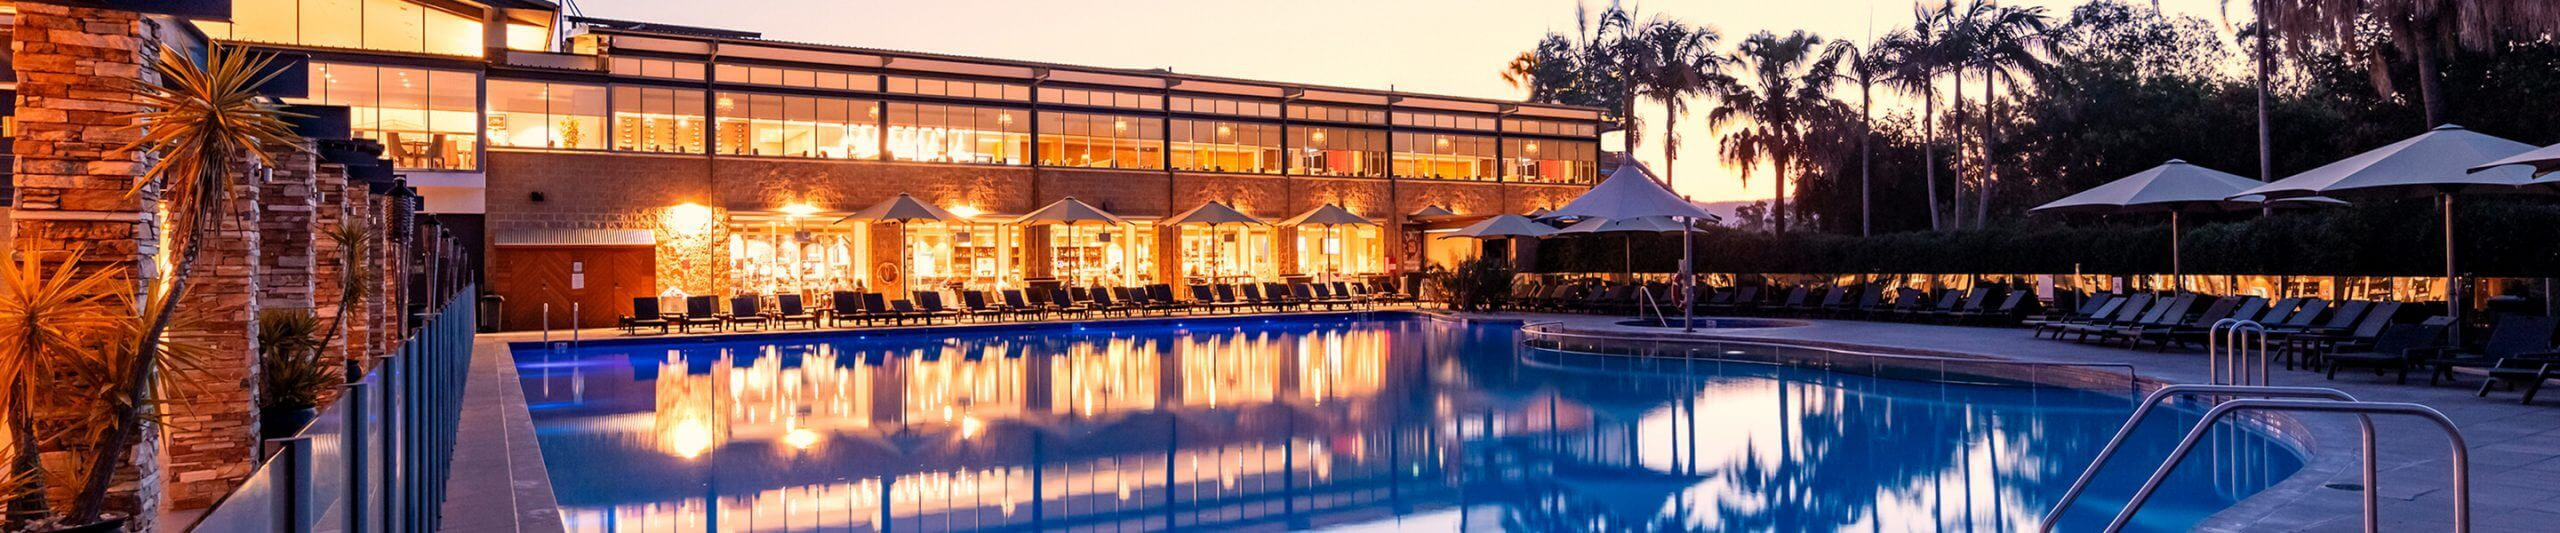 Crowne Plaza Hunter Valley Resort pool at dusk